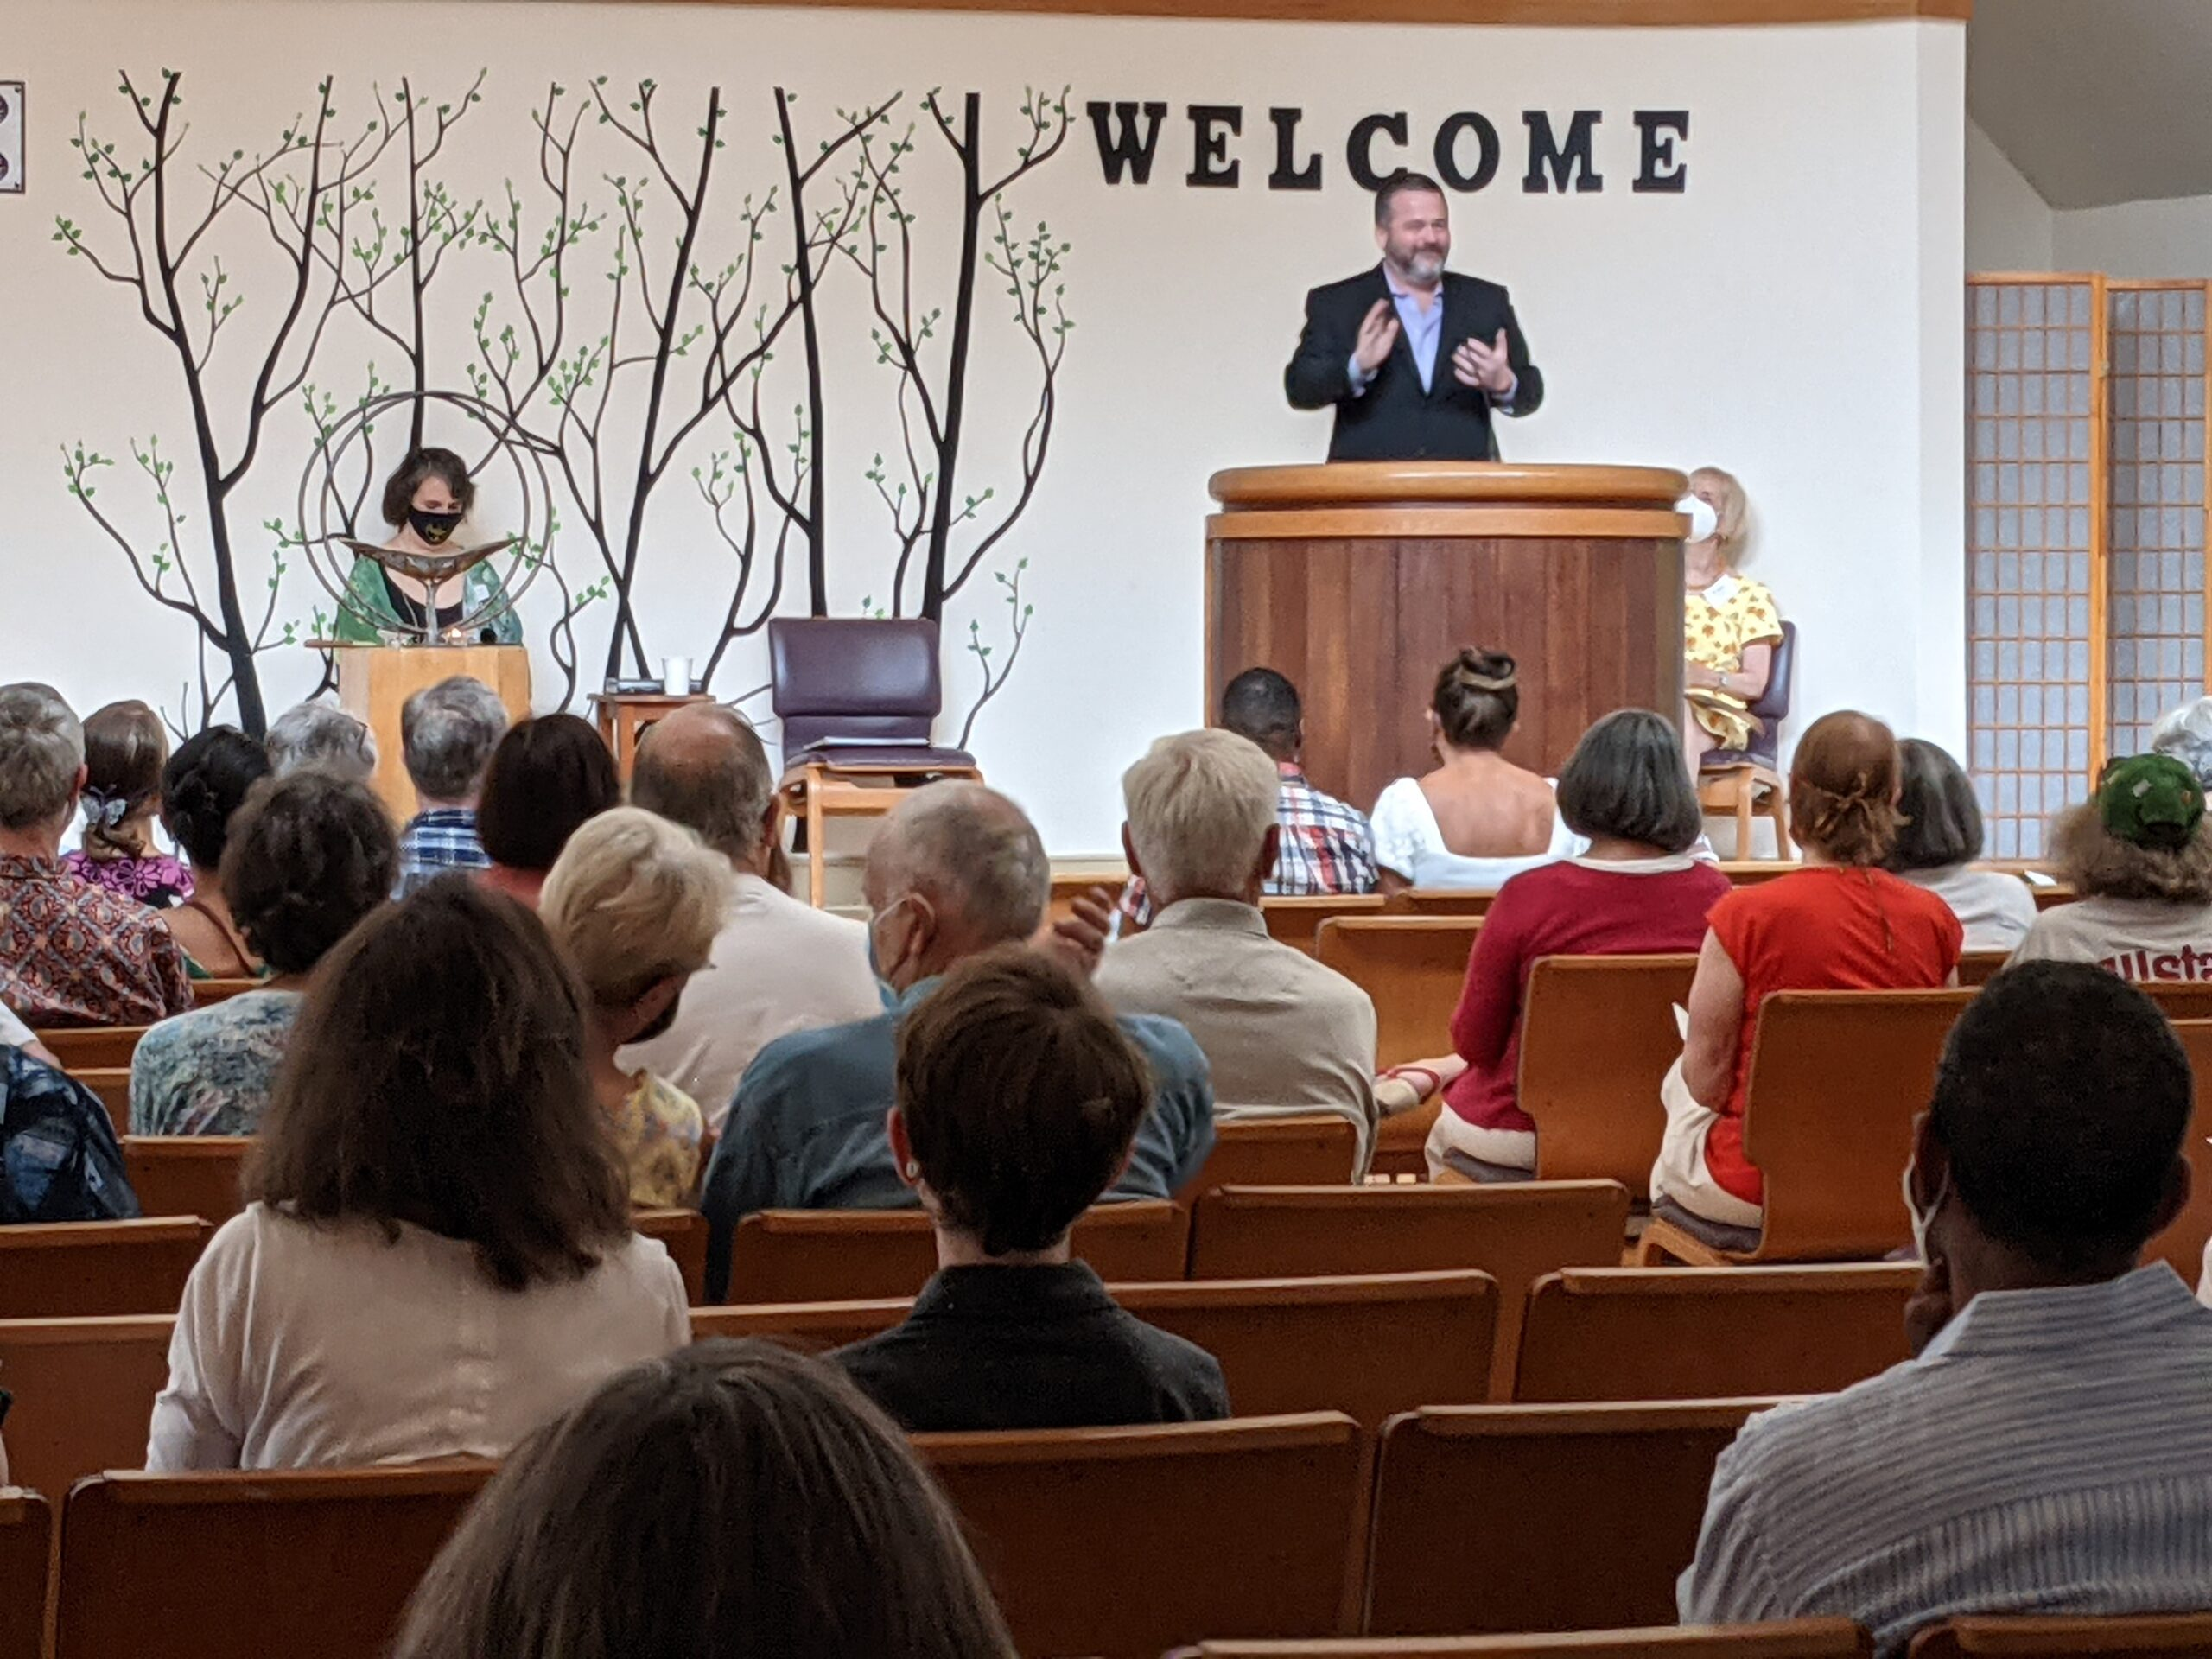 Join us for Worship Each Sunday